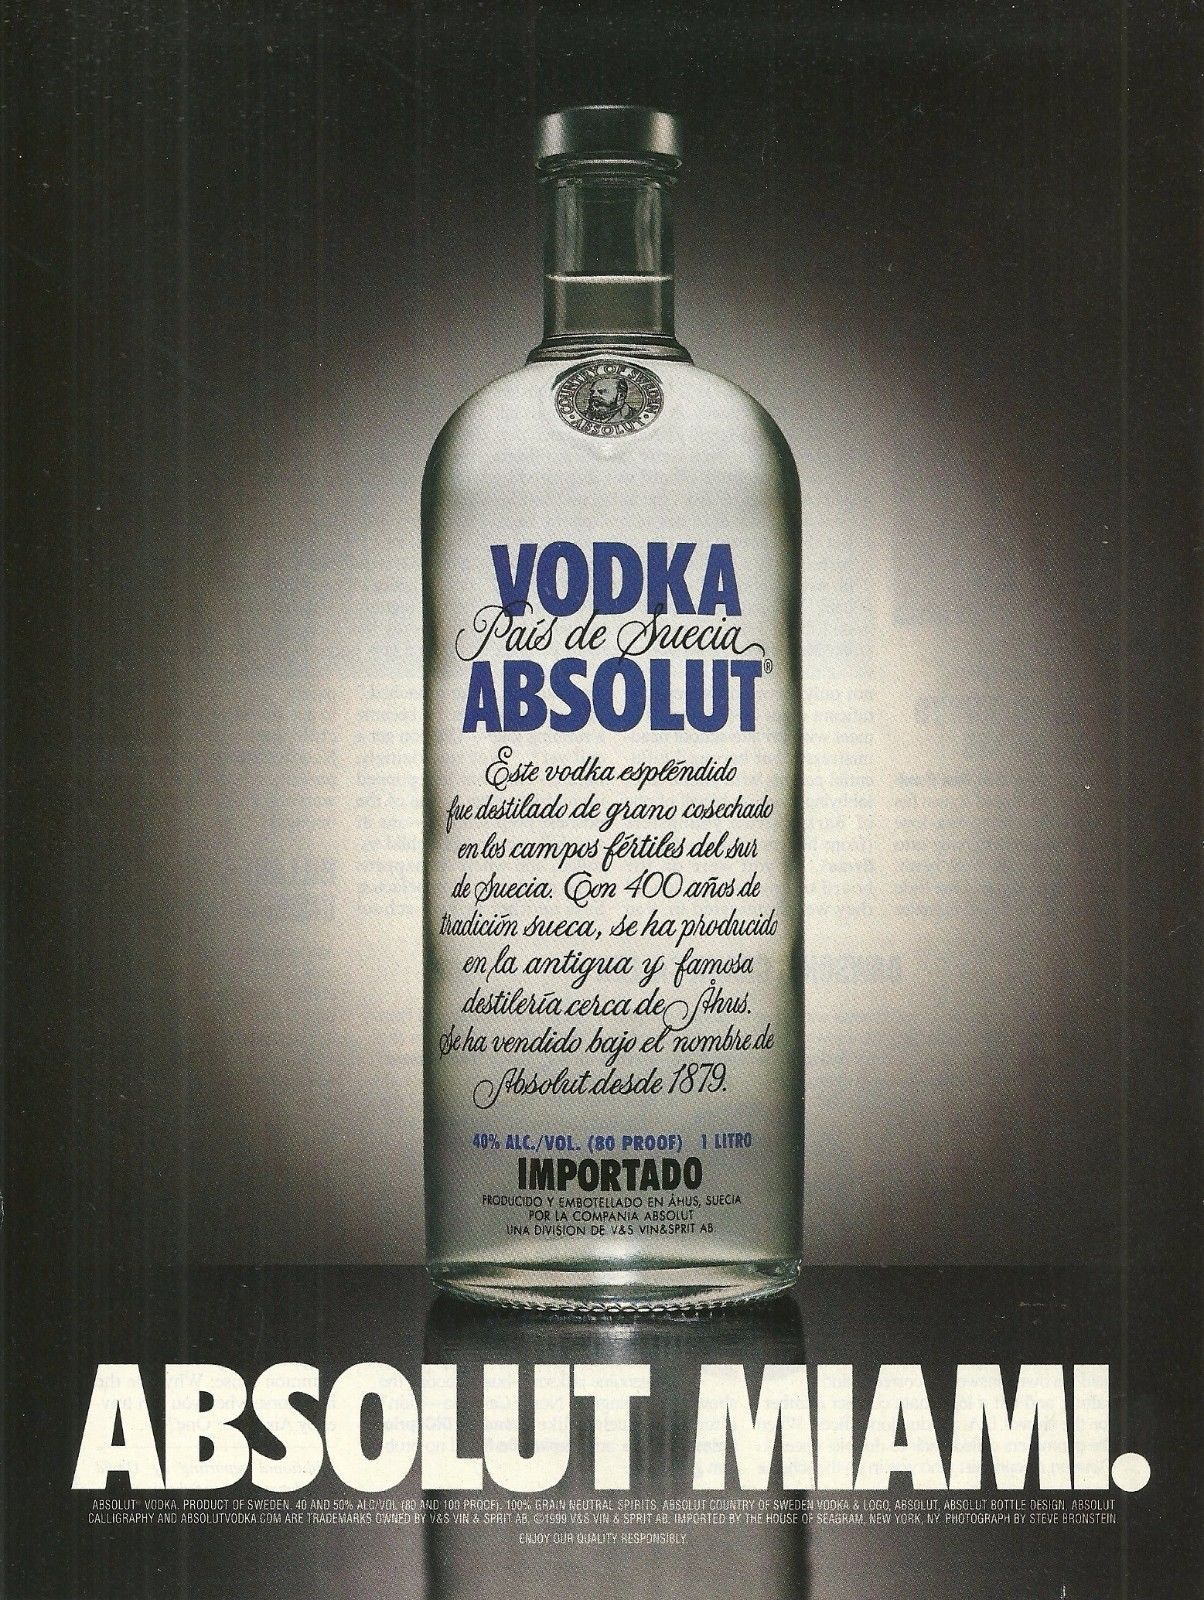 Primary image for ABSOLUT MIAMI Vodka Magazine Ad Spanish Text Version